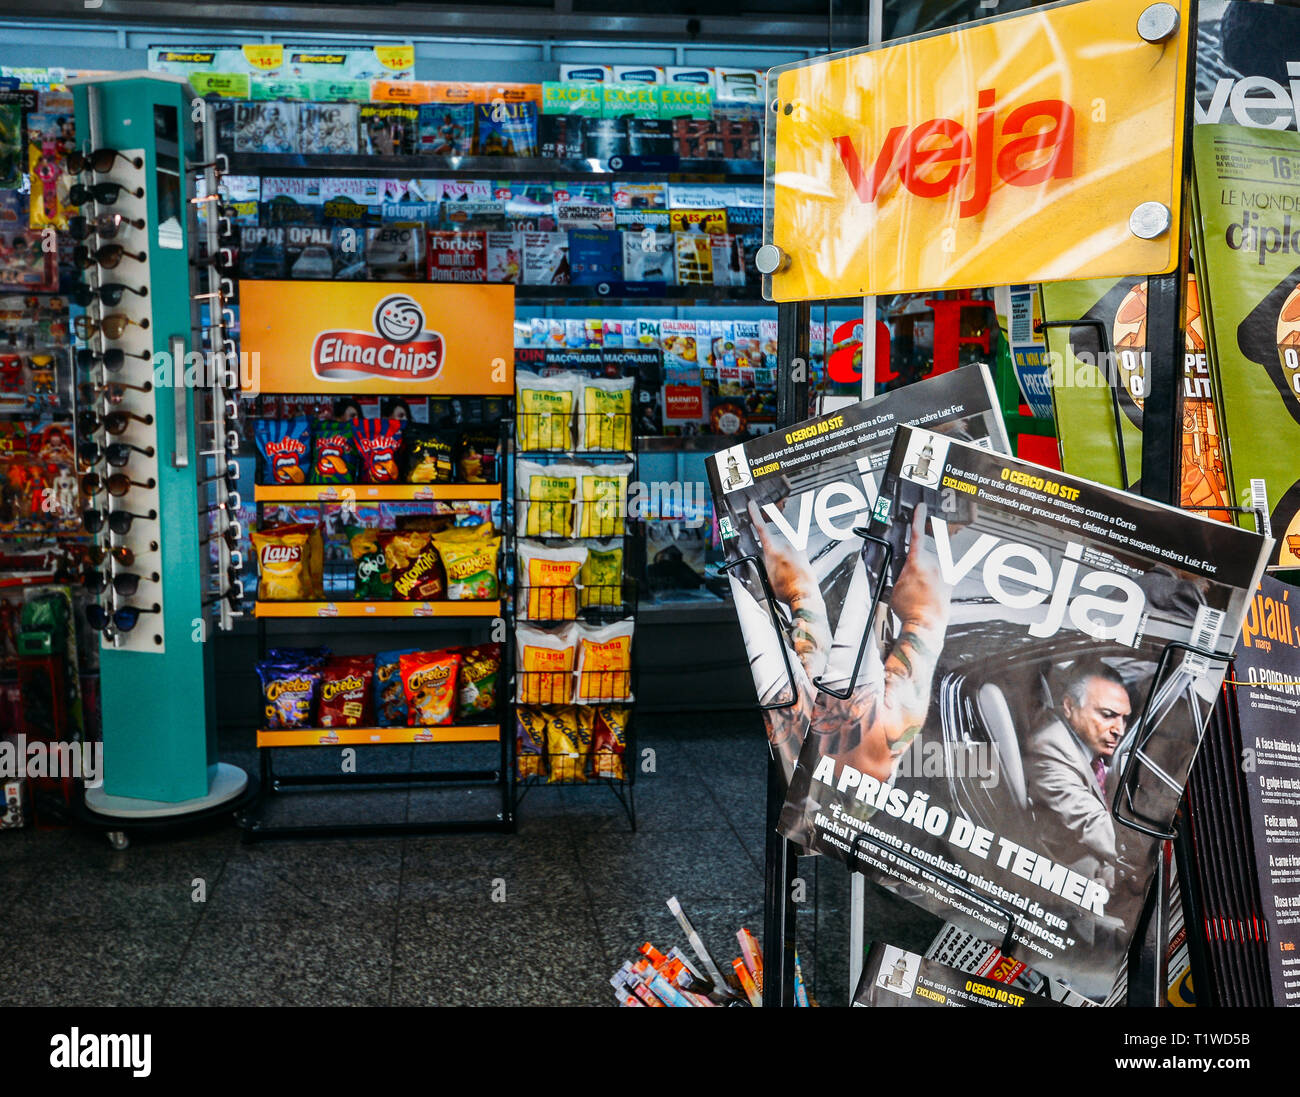 Rio de Janeiro, Brazil - March 27, 2018: Illustrative editorial of cover of VEJA Magazine with news of former President Michael Temer being arrested - Stock Image